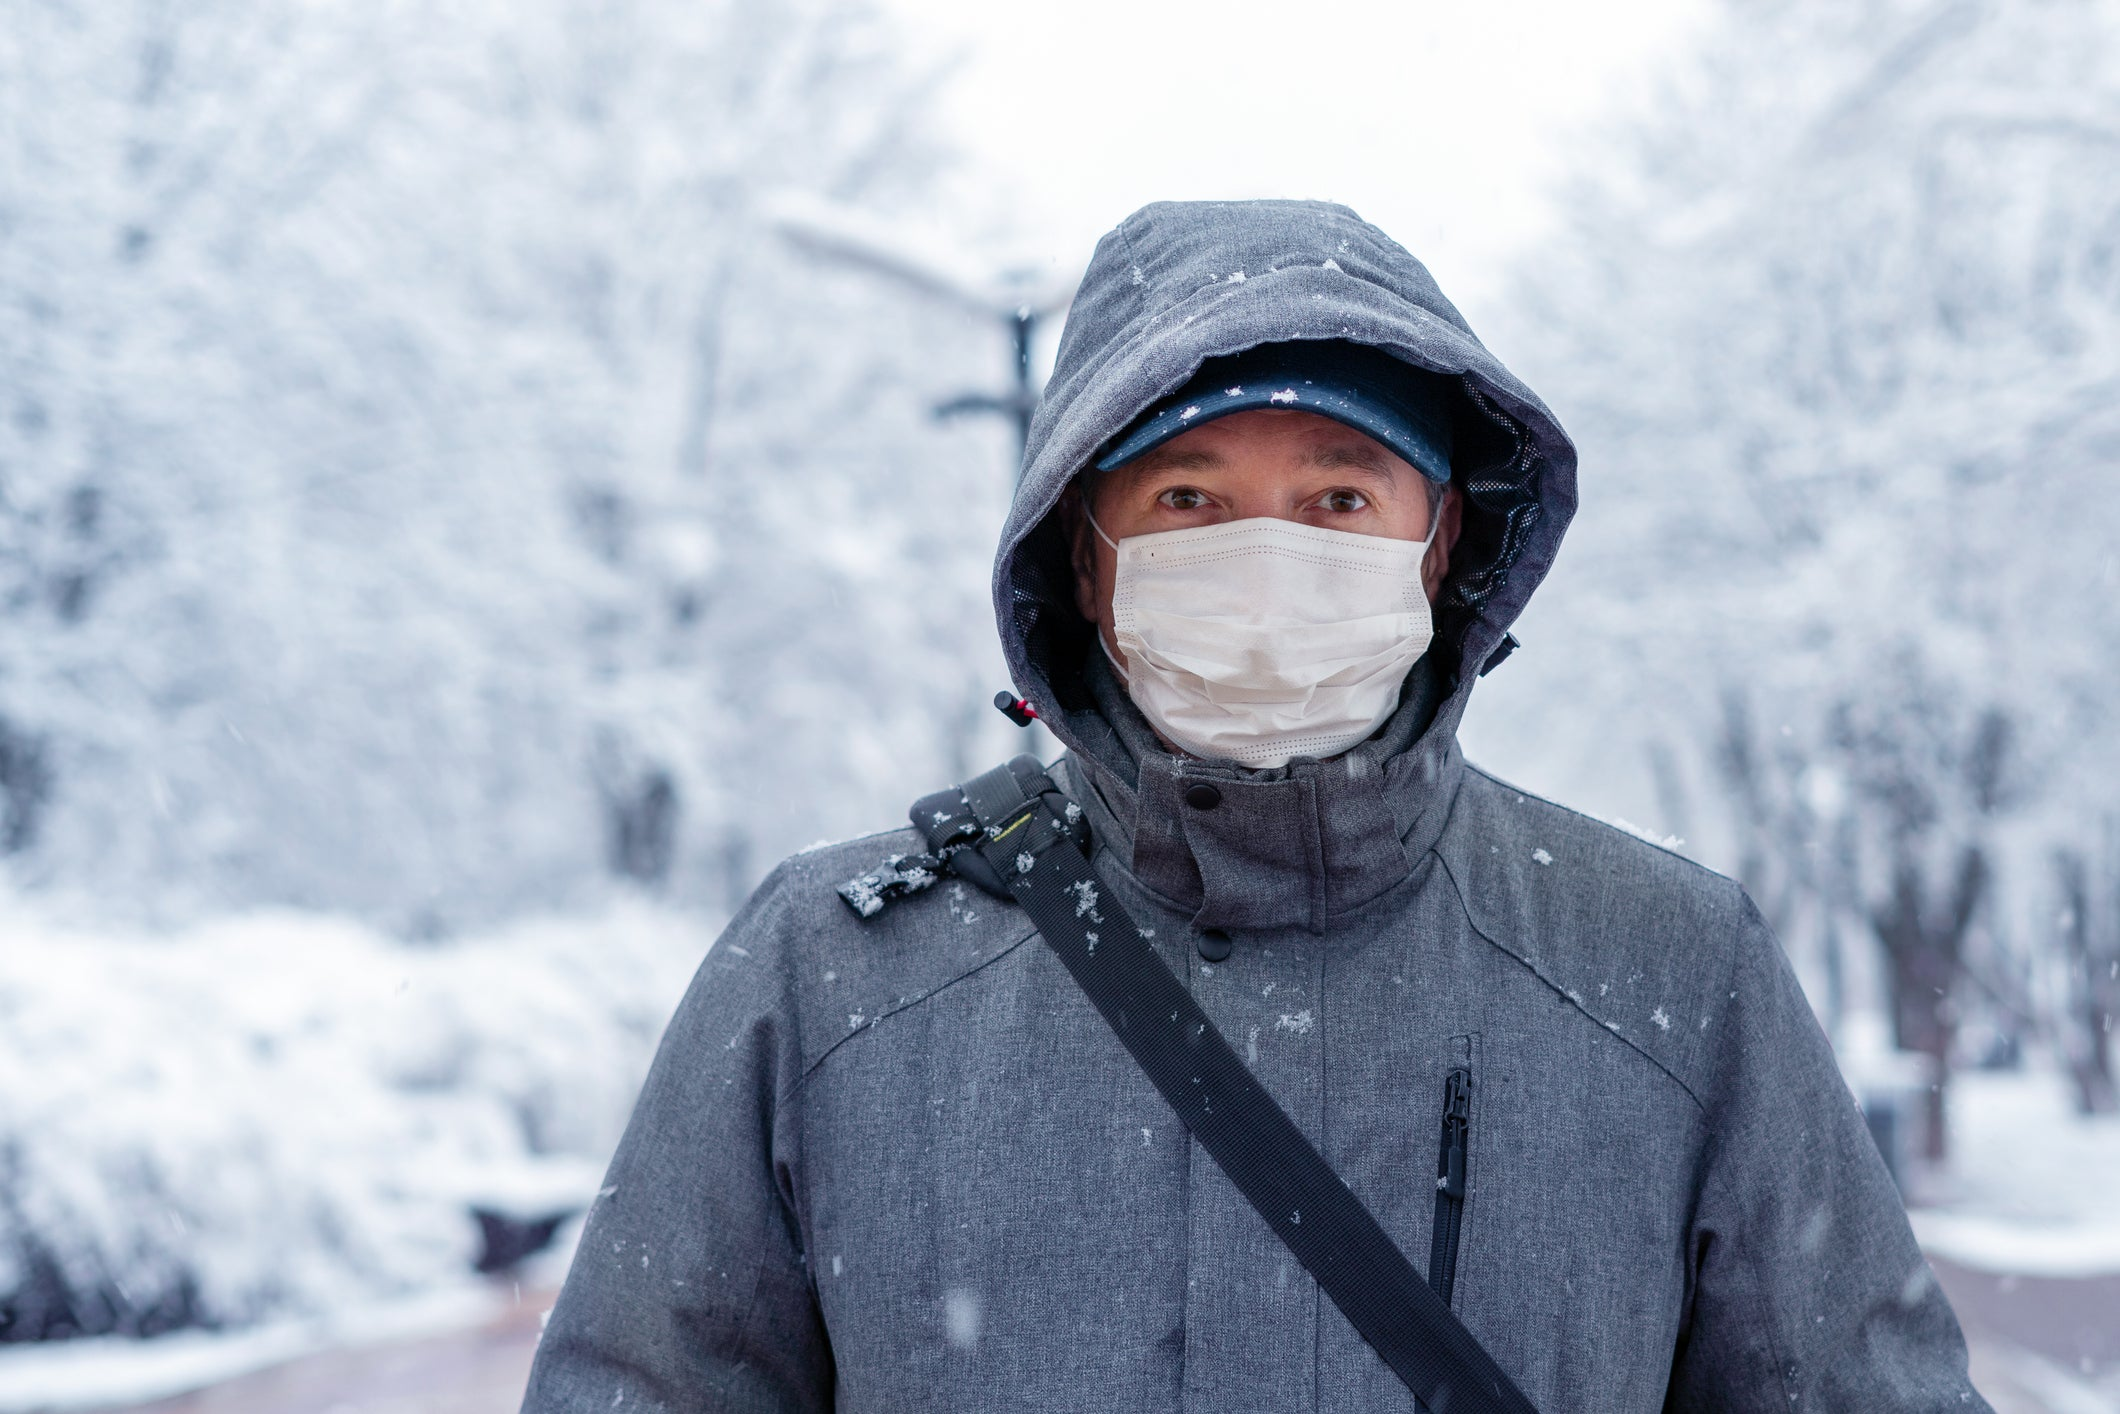 Worried About a Winter Coronavirus Lockdown? Buy These 3 Stocks Now